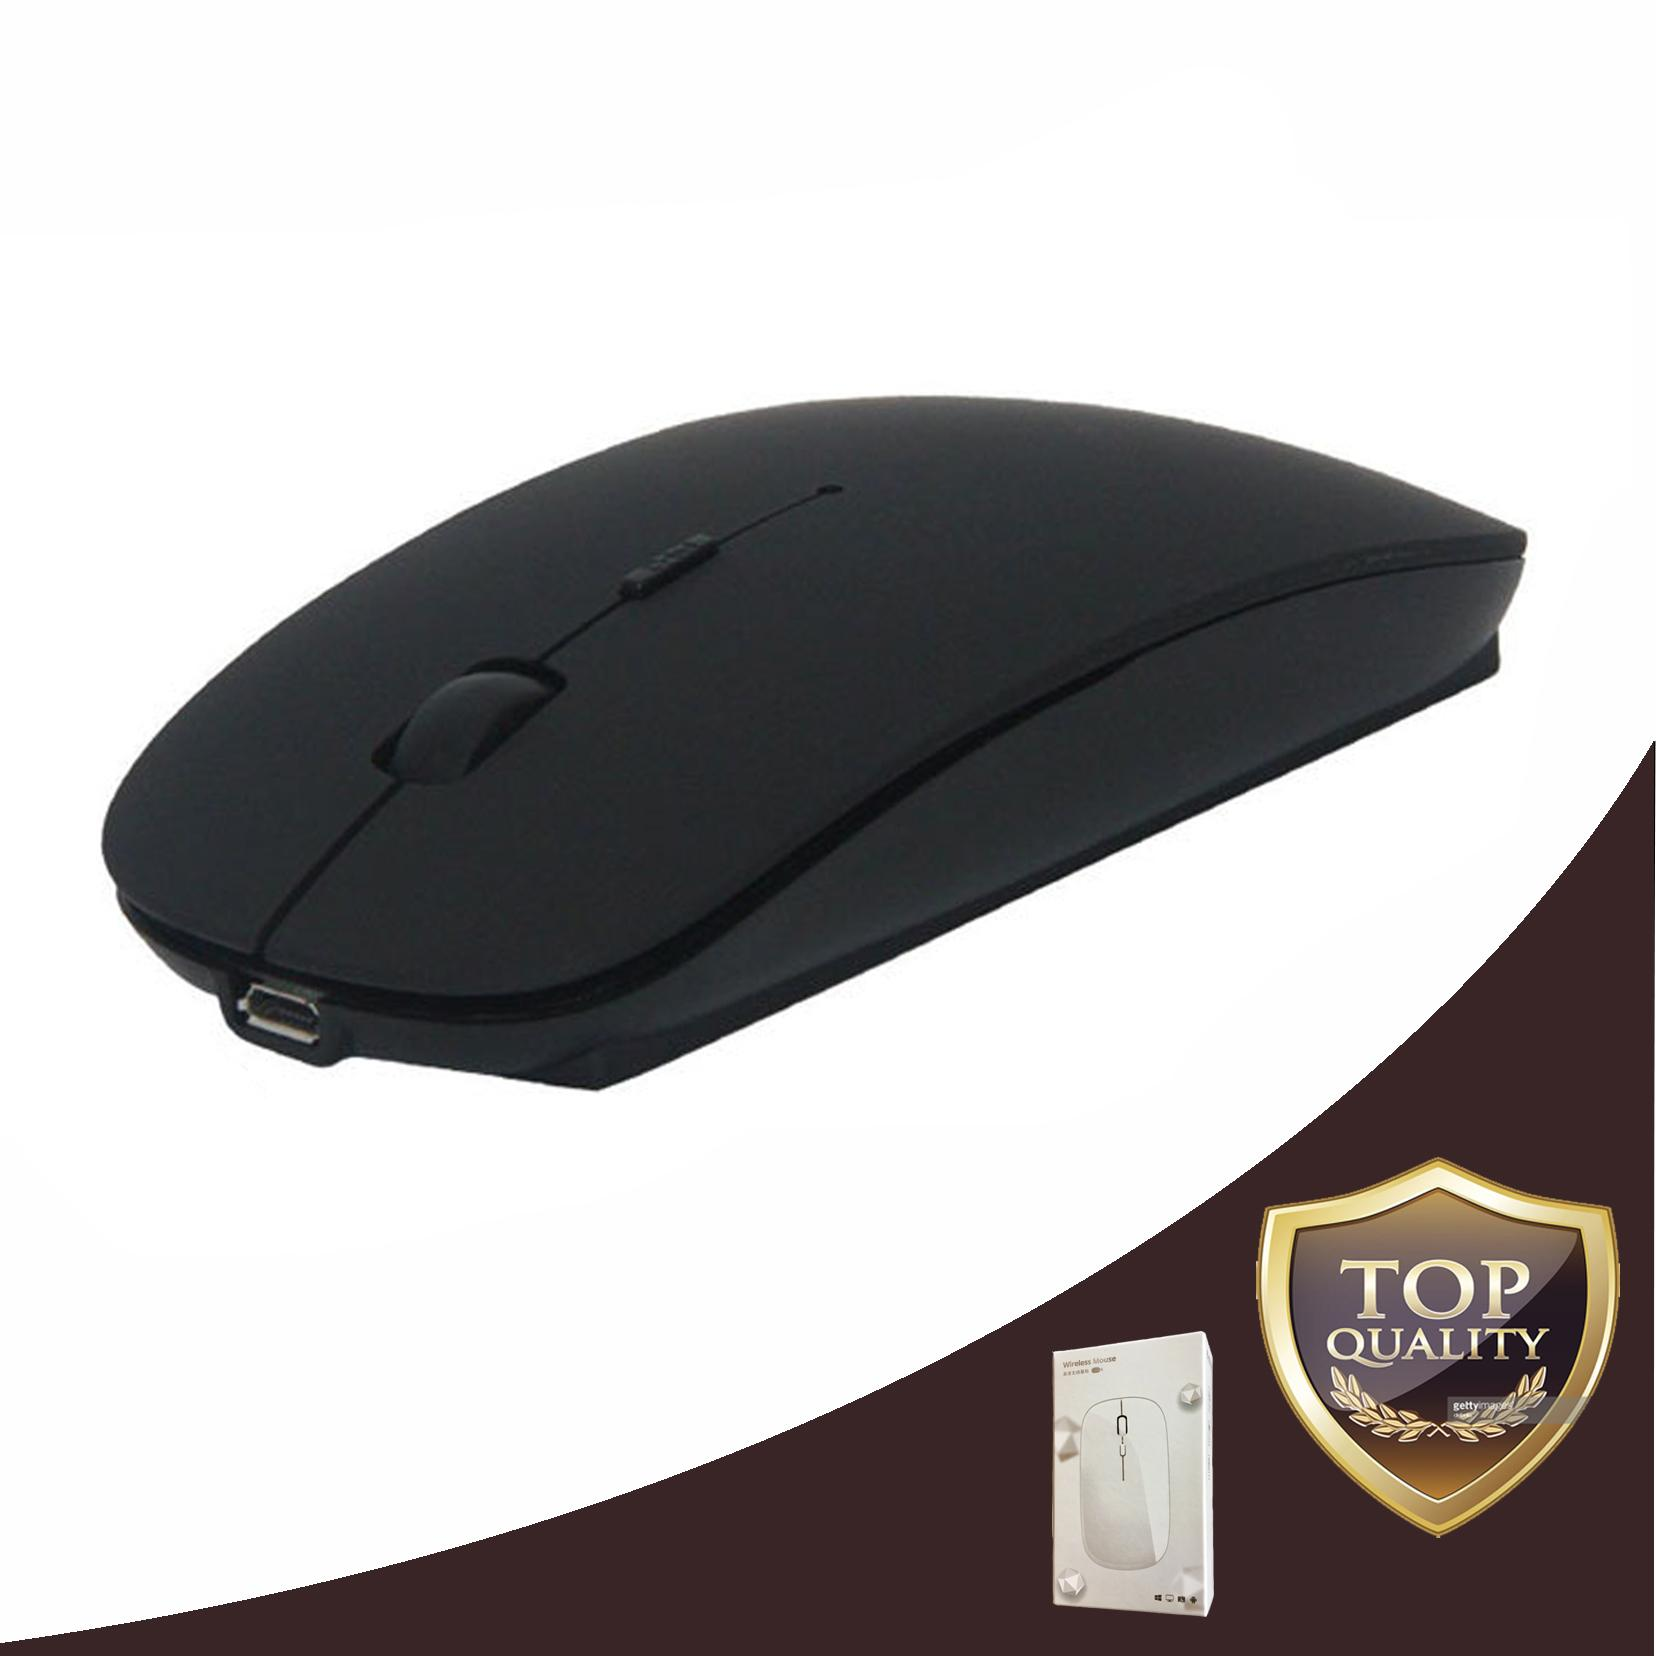 Basic puter Mouse for sale Basic Mice prices brands & specs in Philippines